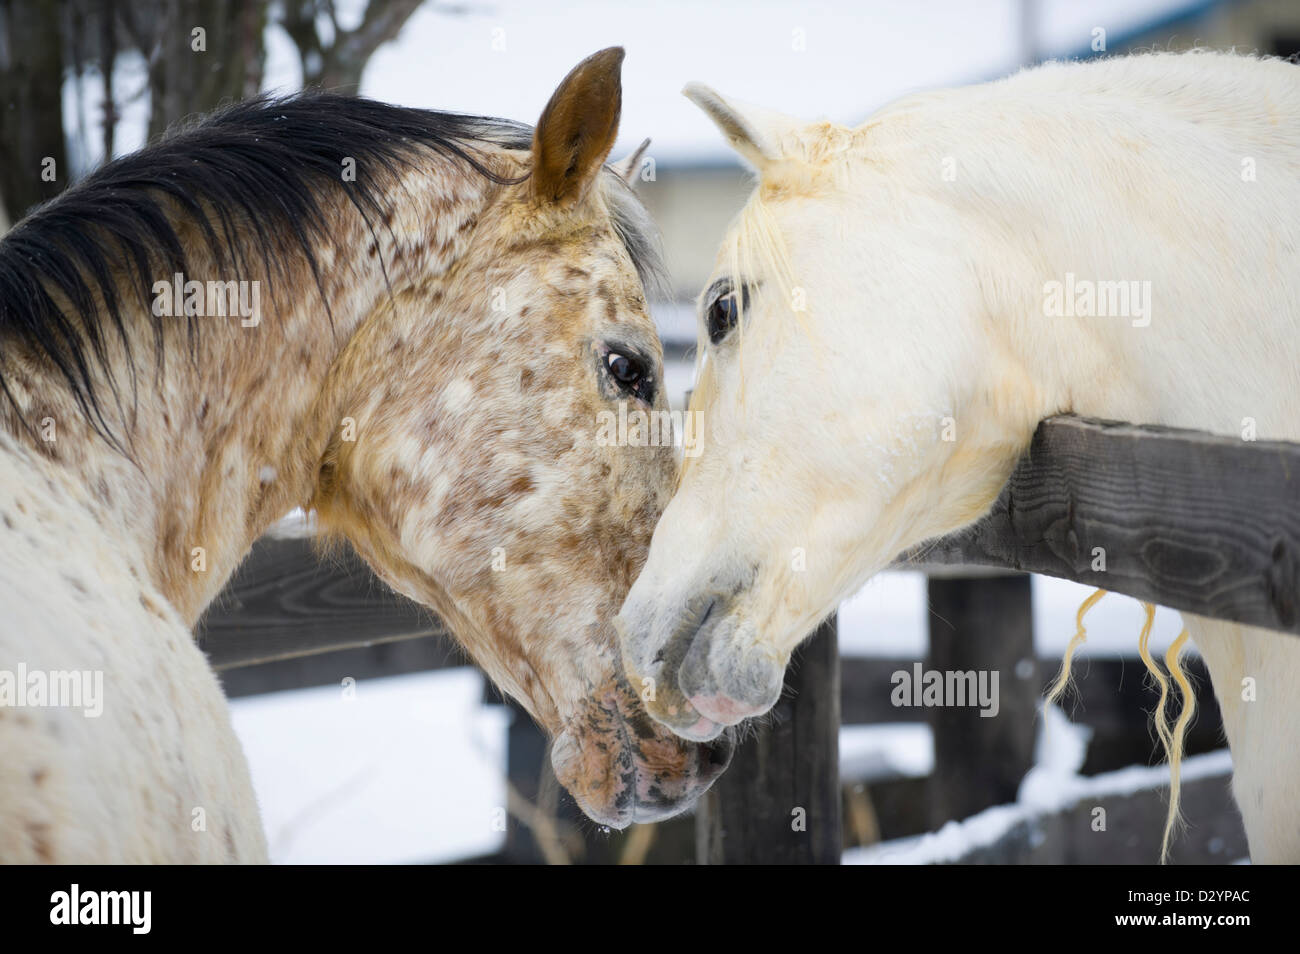 Two horses showing affection and closeness while touching, a white Arabian stallion and a spotted Appaloosa mare. - Stock Image